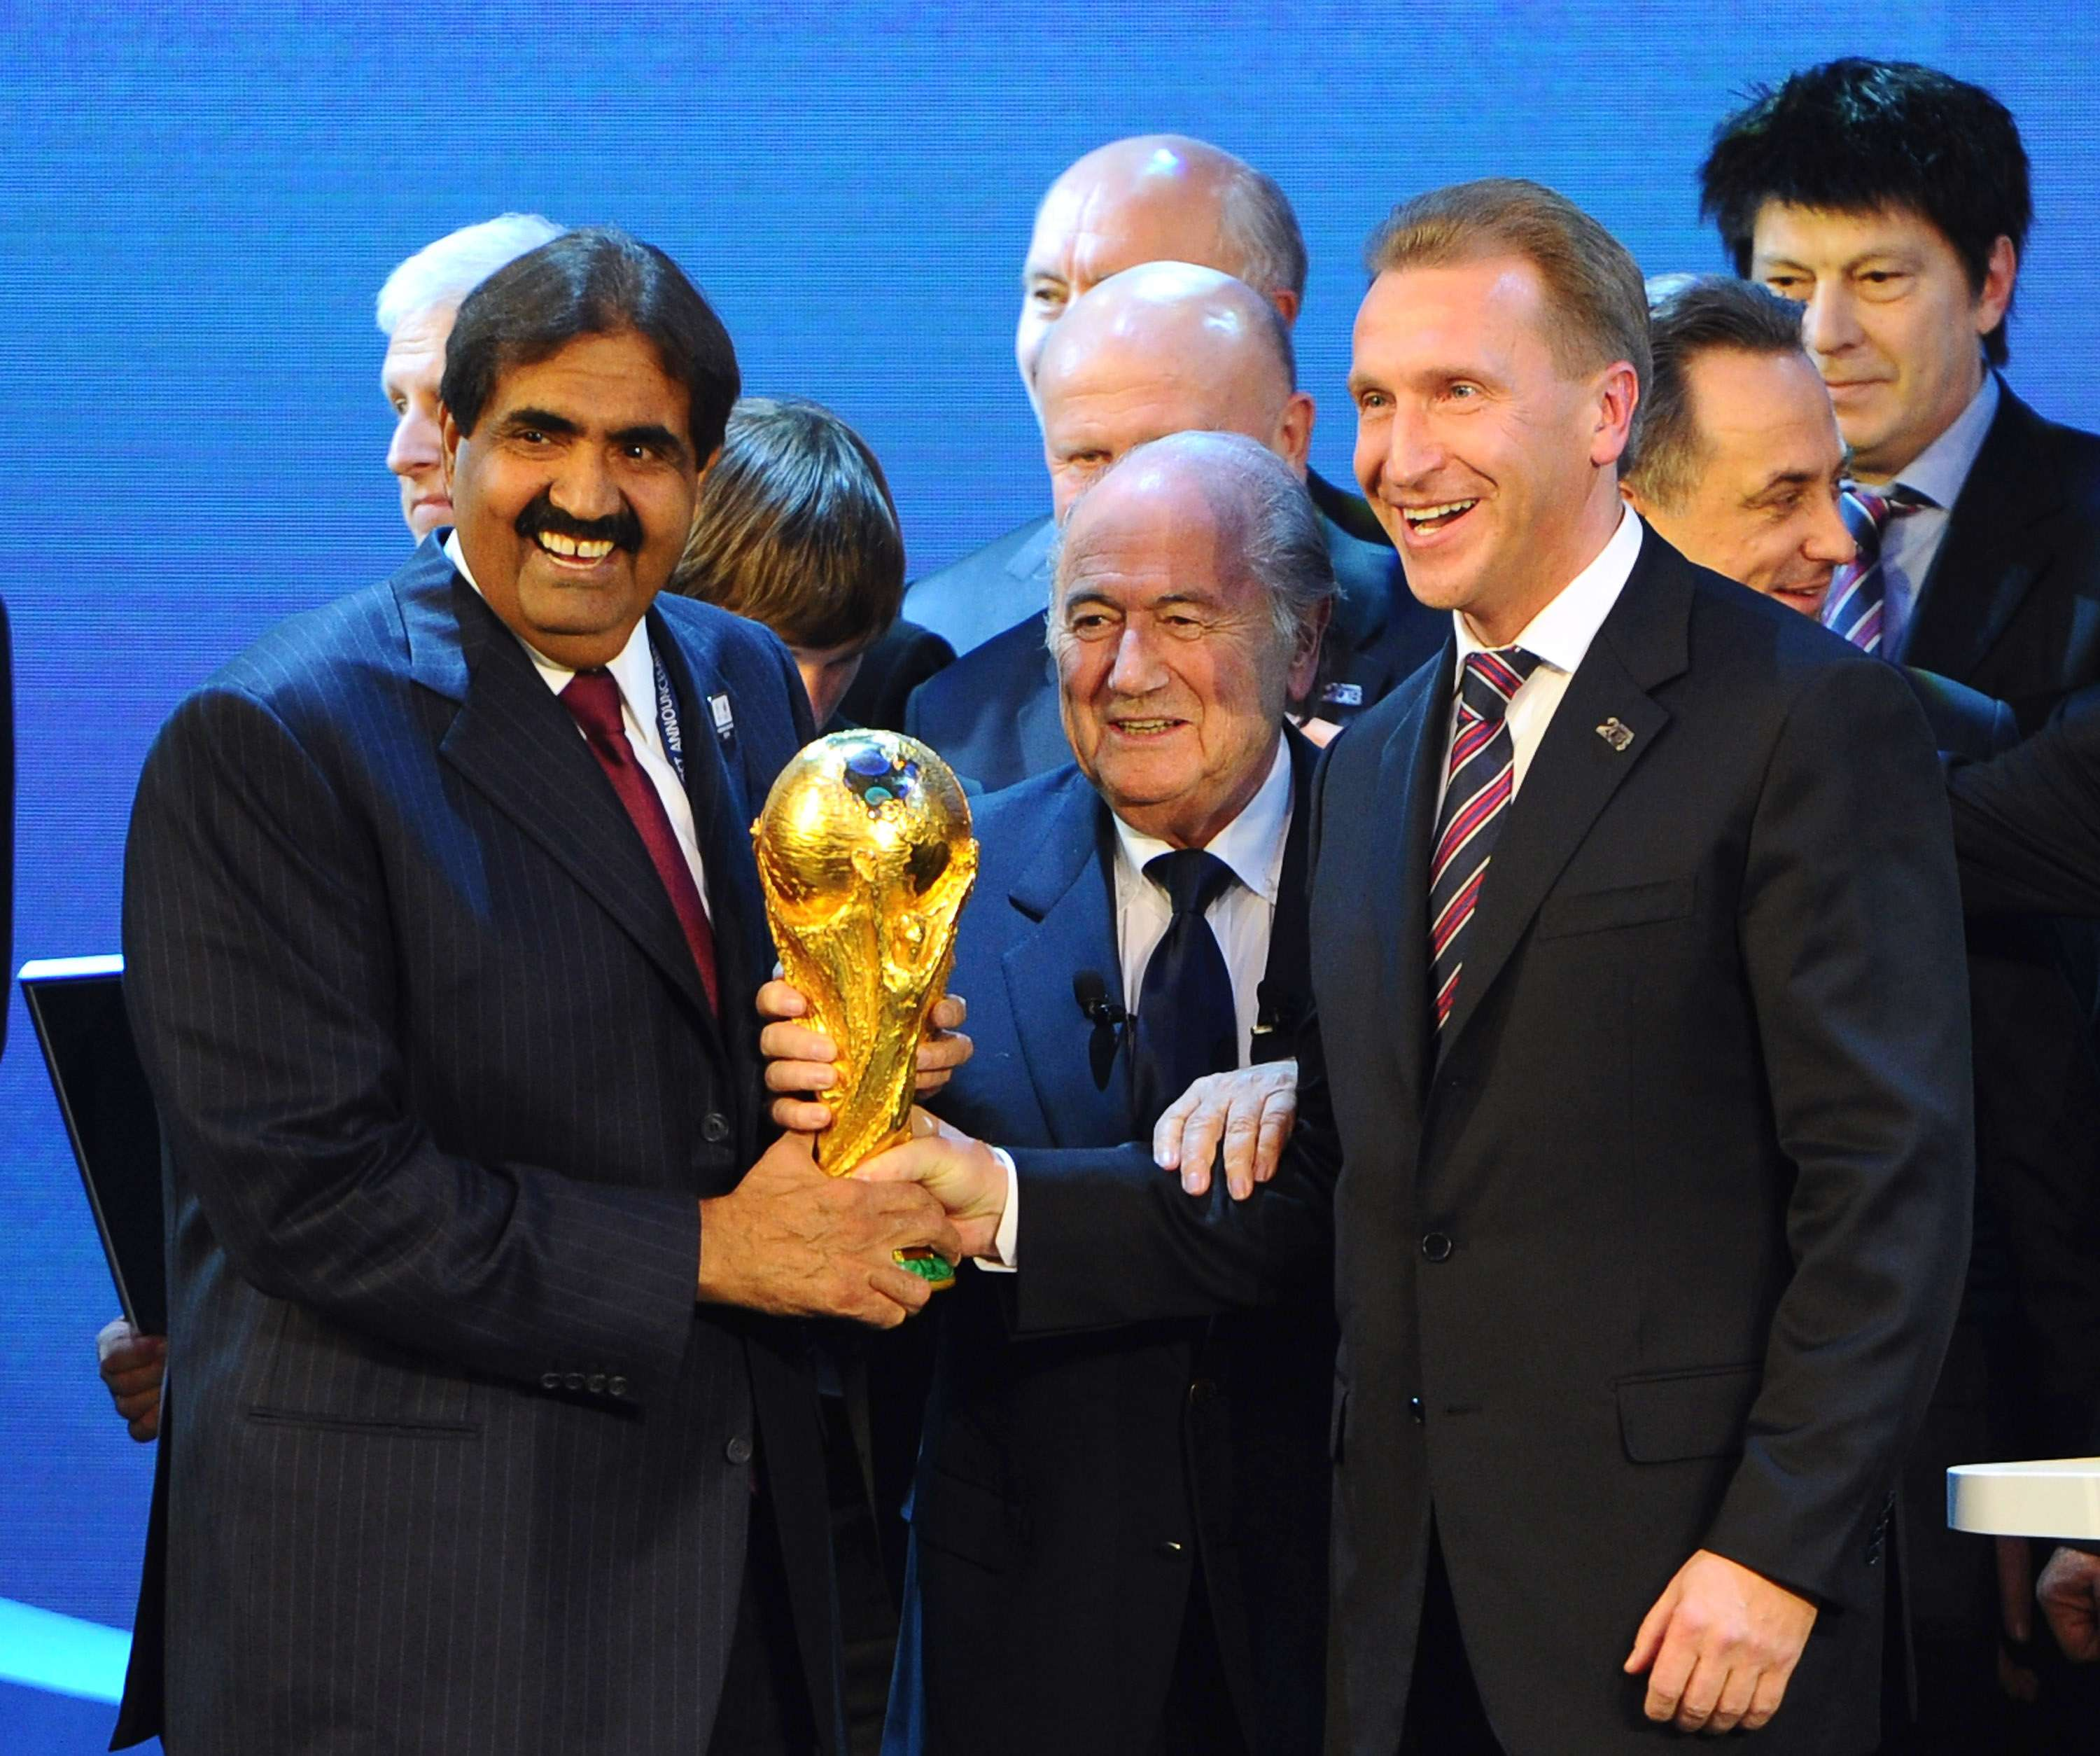 Sheikh Hamad bin Khalifa Al-Thani the Emir of Qatar and Deputy Russia Prime Minister Igor Shuvalov hold the FIFA World Cup trophy with FIFA President Joseph S. Blatter after Russia were awarded the 2018 World Cup and Qatar the 2022 World Cup on December 2, 2010 in Zurich, Switzerland Foto: Getty Images